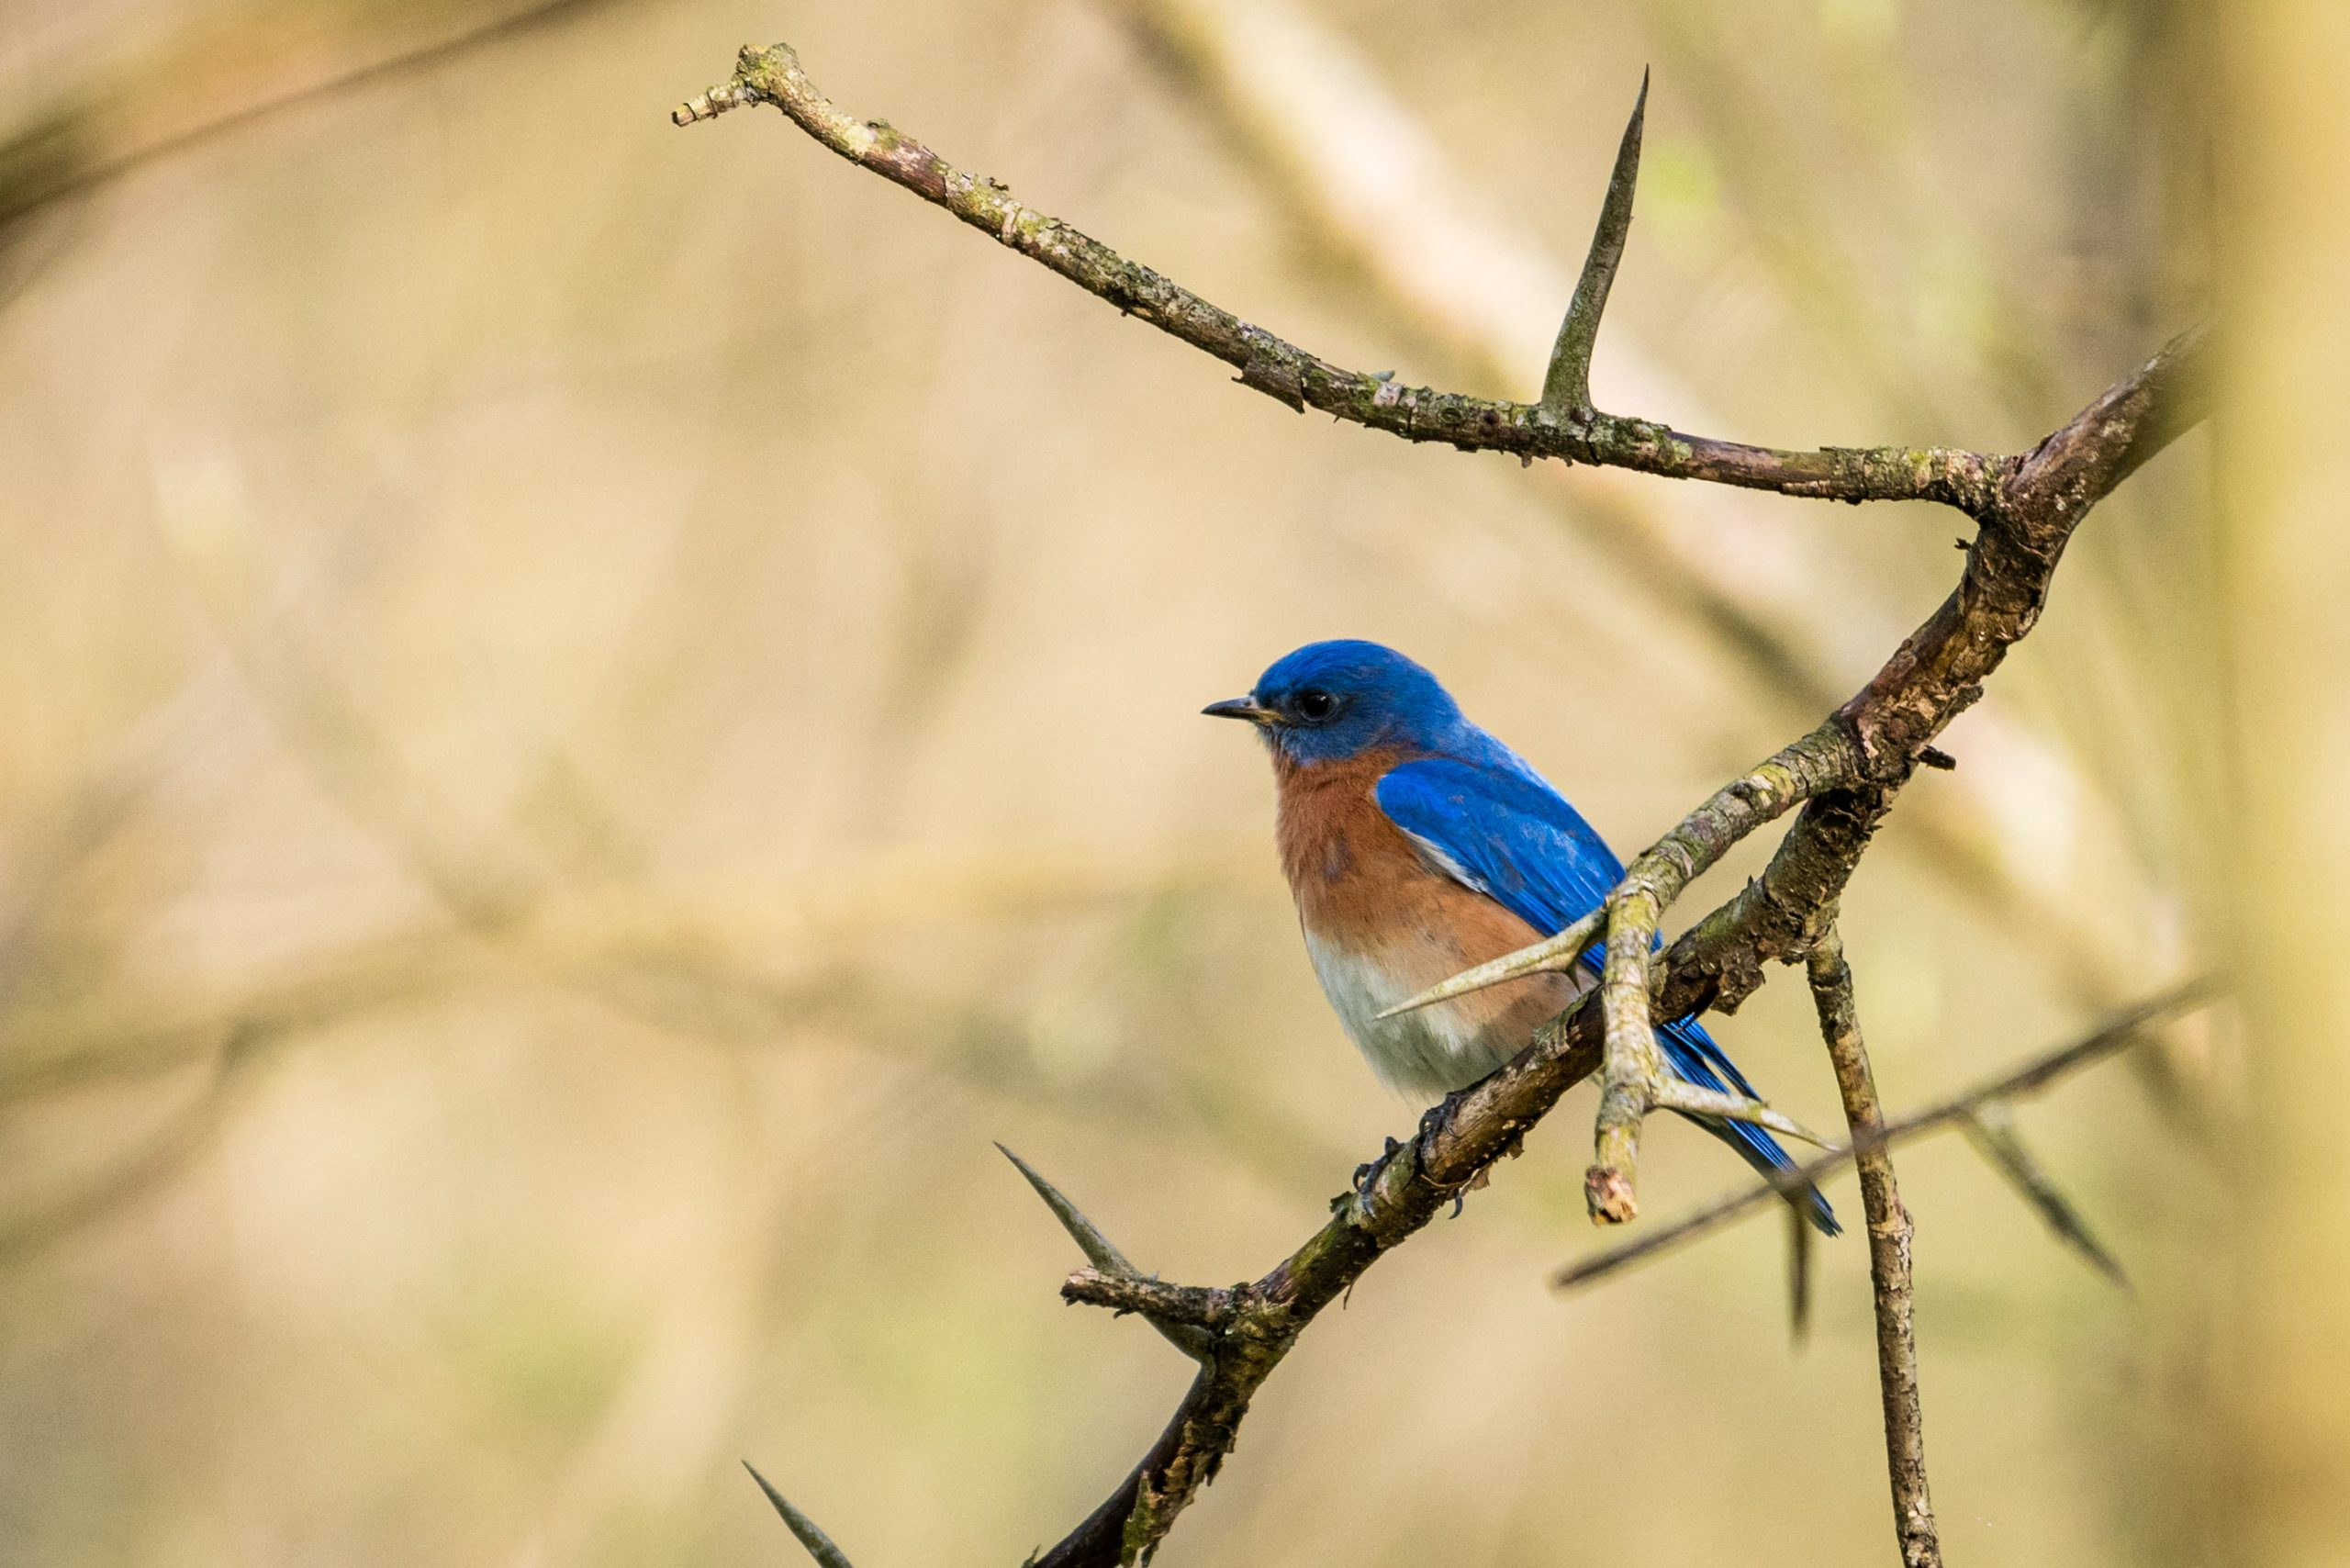 An eastern bluebird (Sialia sialis) perches on a tree branch.